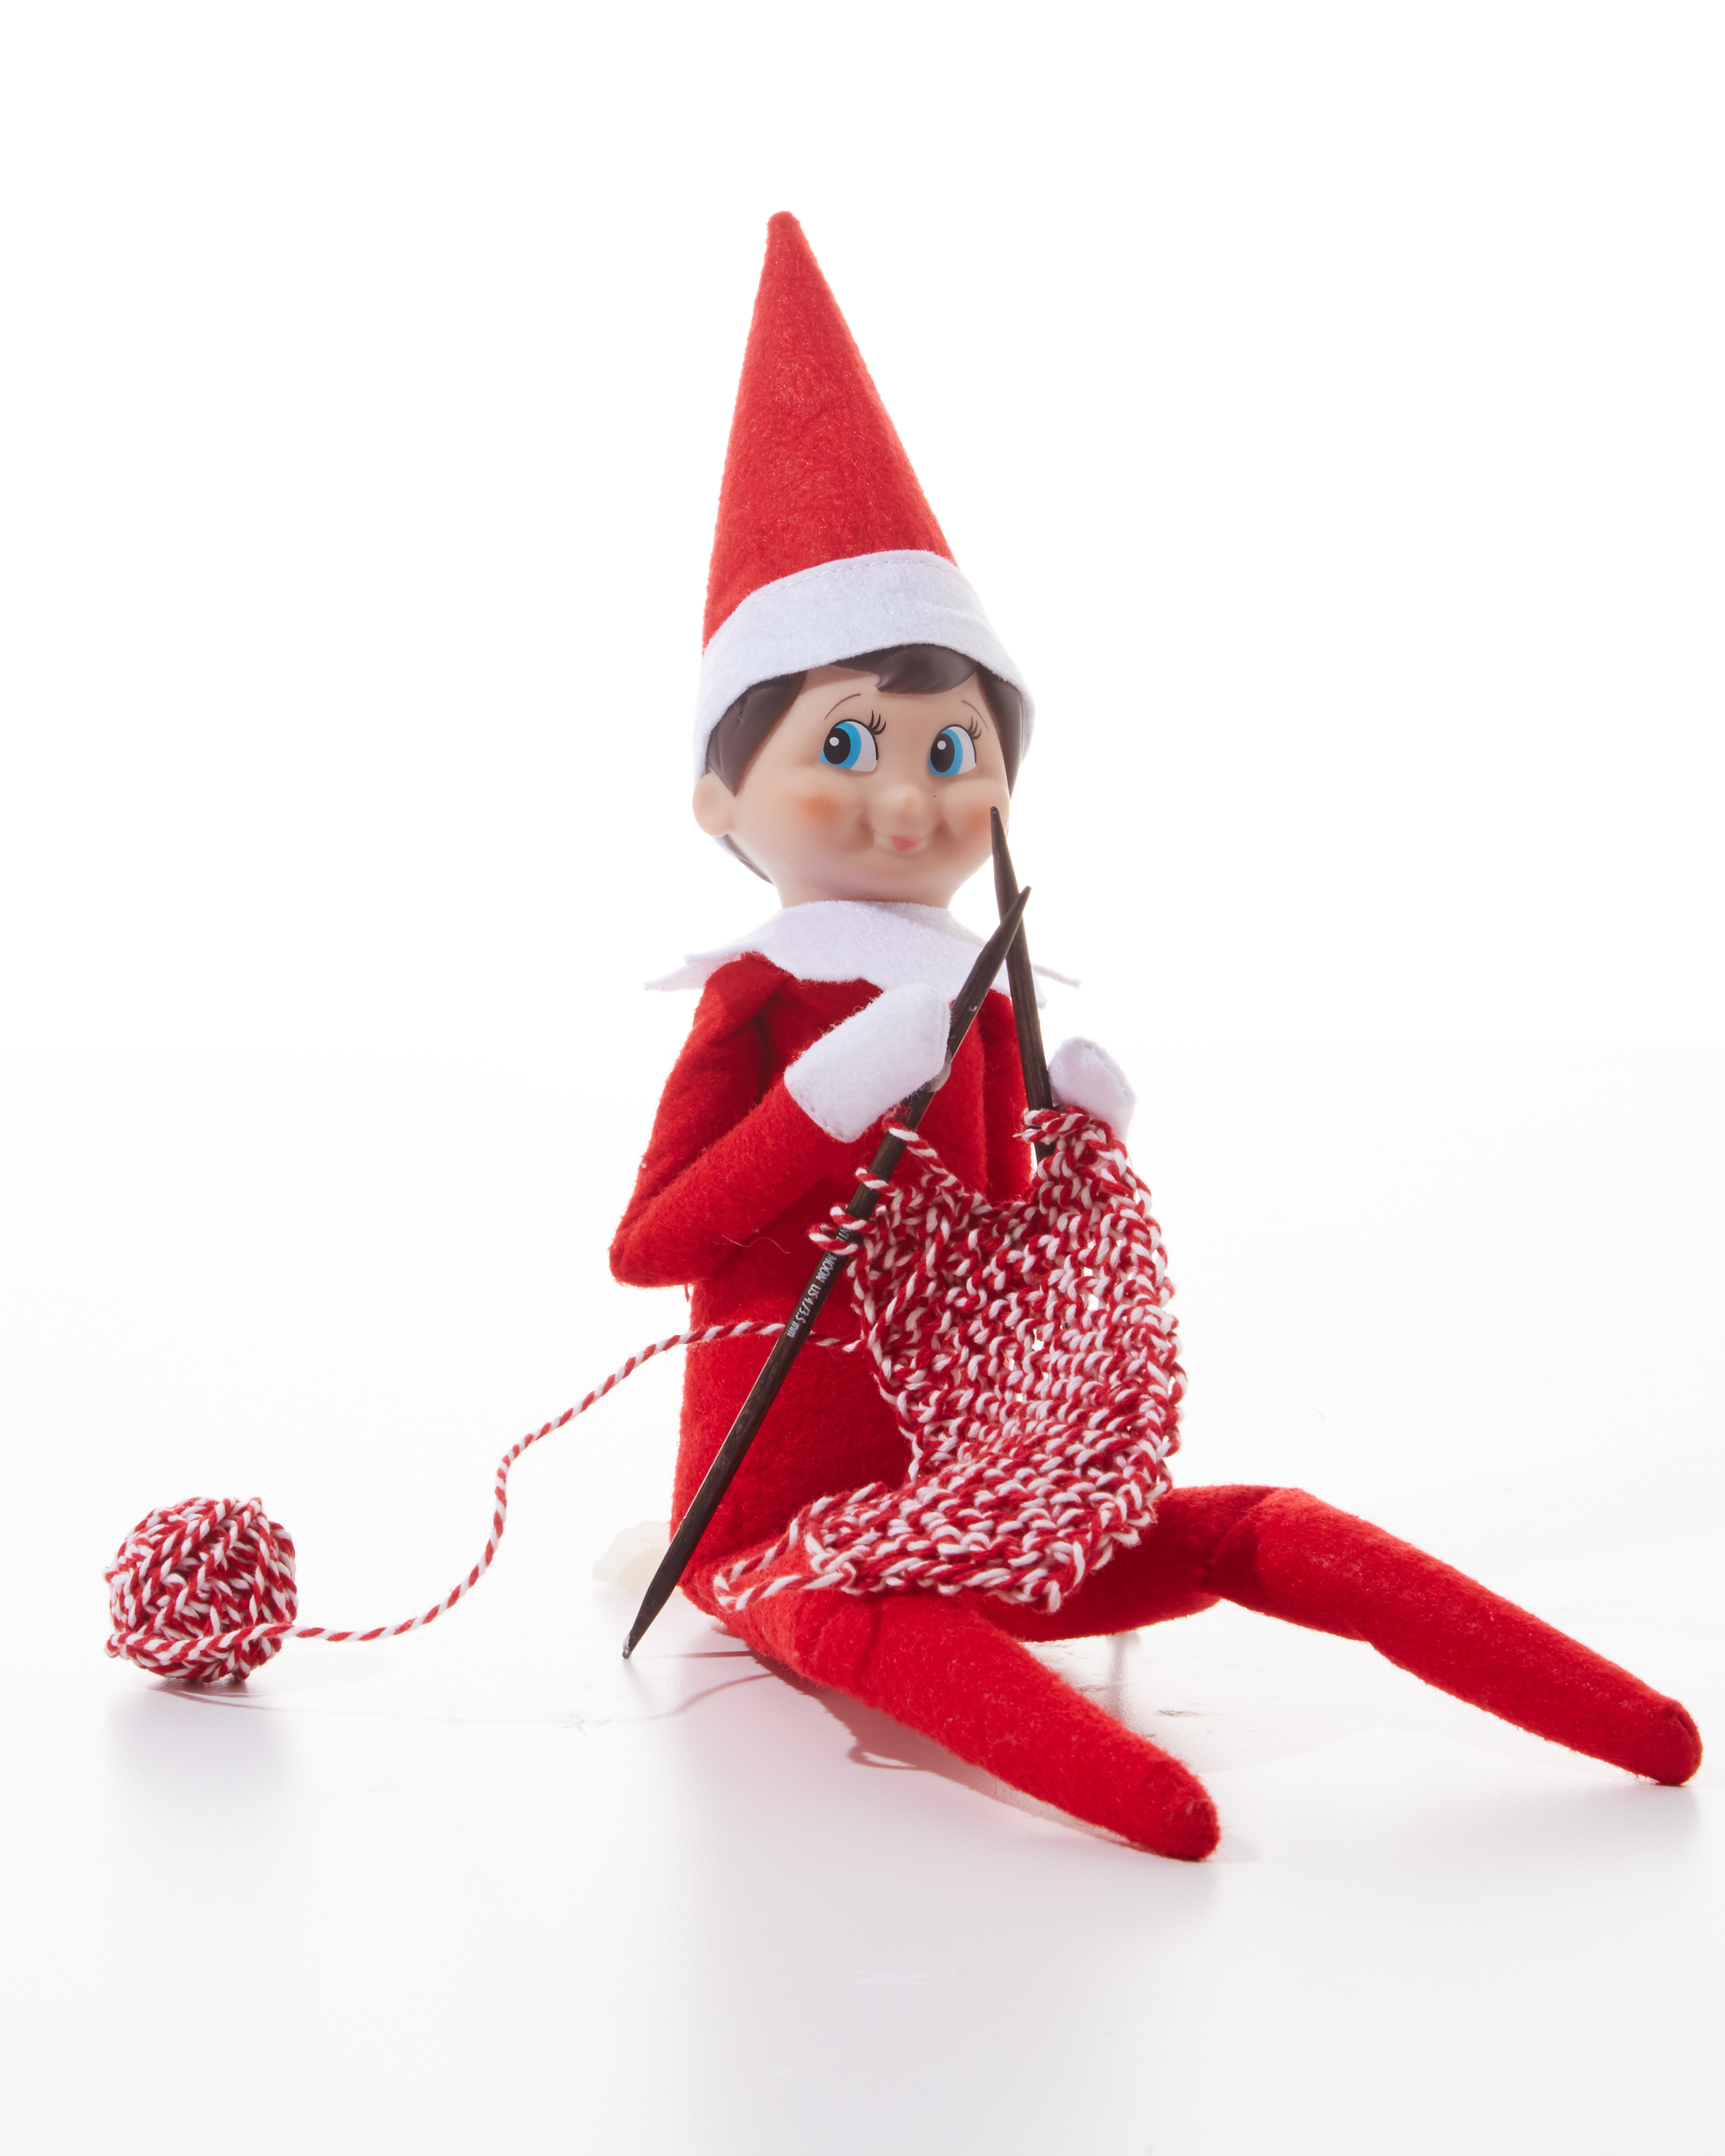 elf-on-shelf-knitting-0131-d112640-1215.jpg